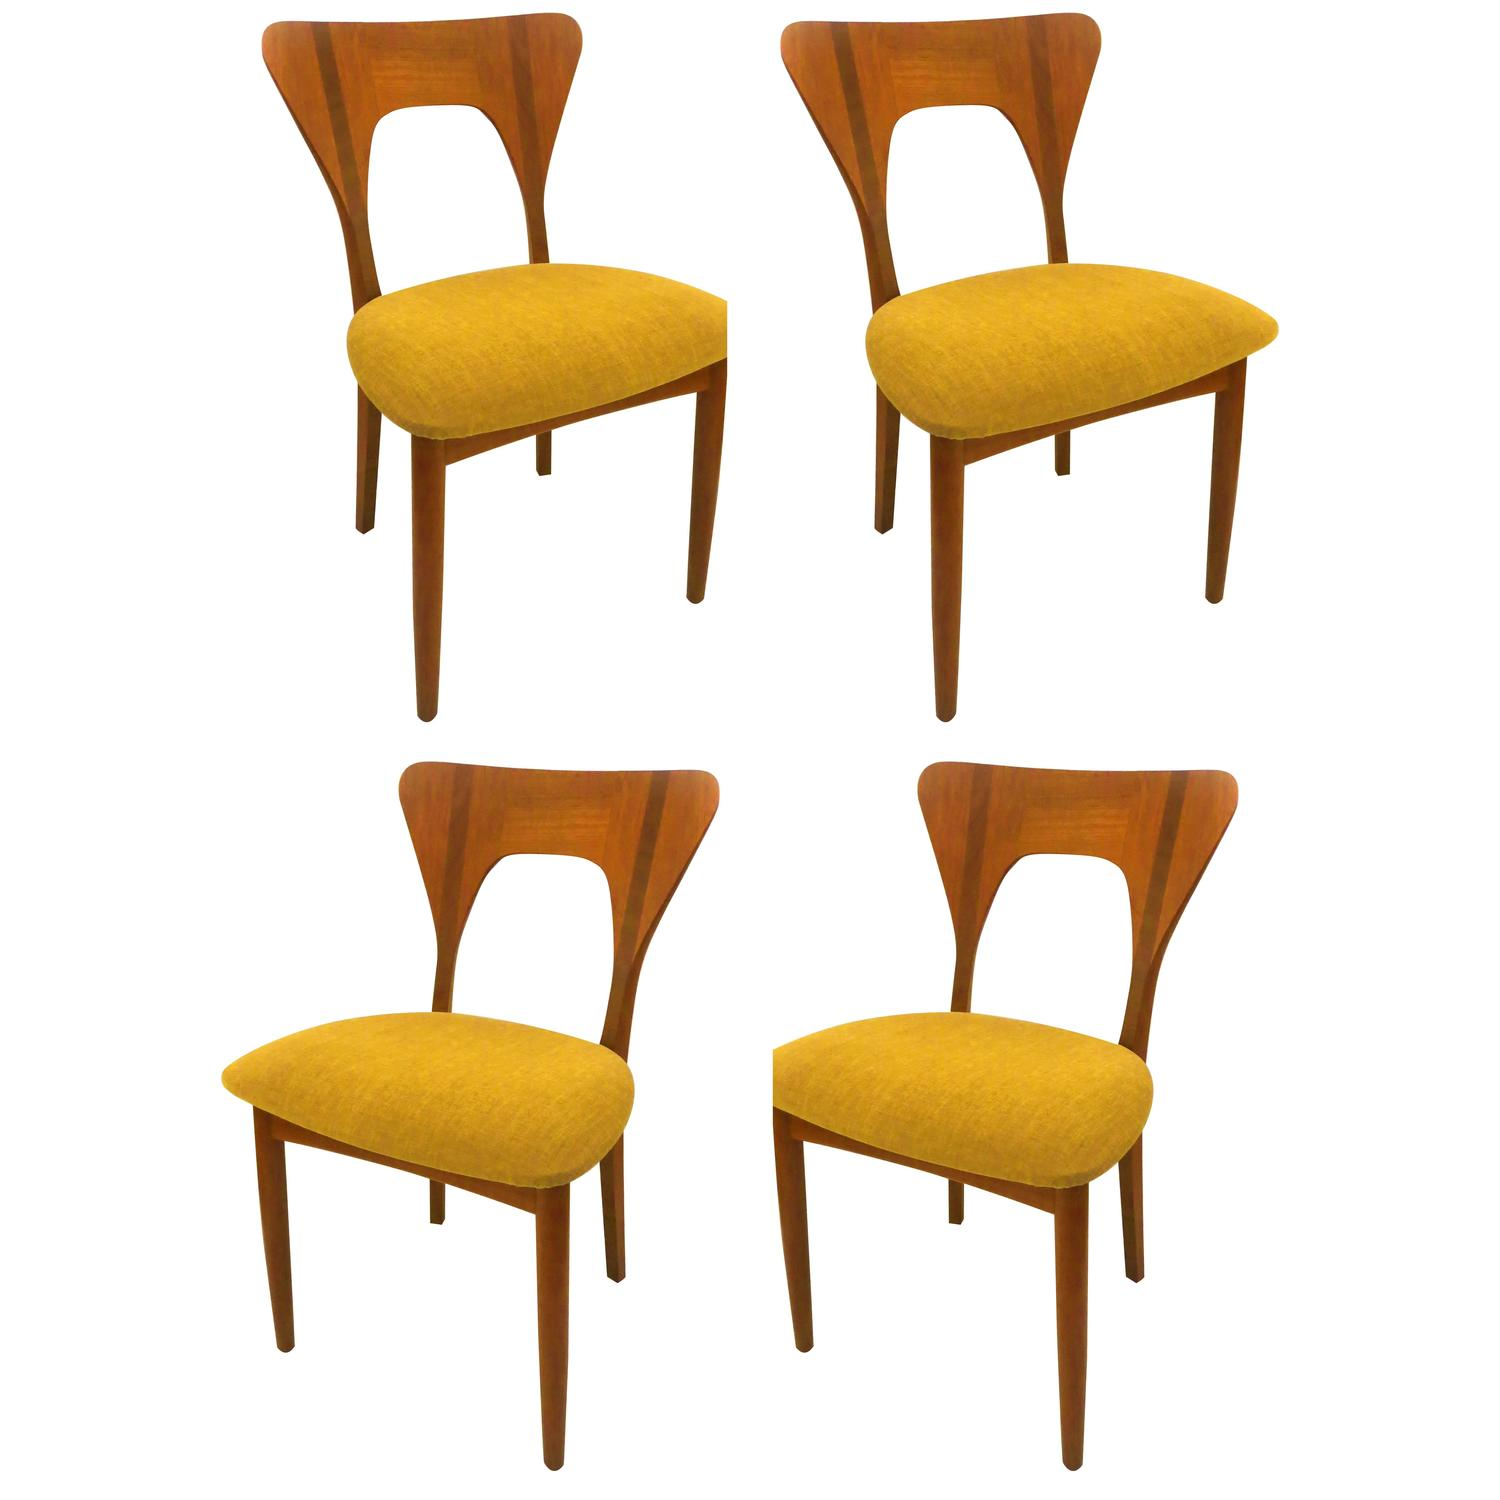 Set Of Four Danish Modern Solid Teak Dining Chairs Designed By Nils